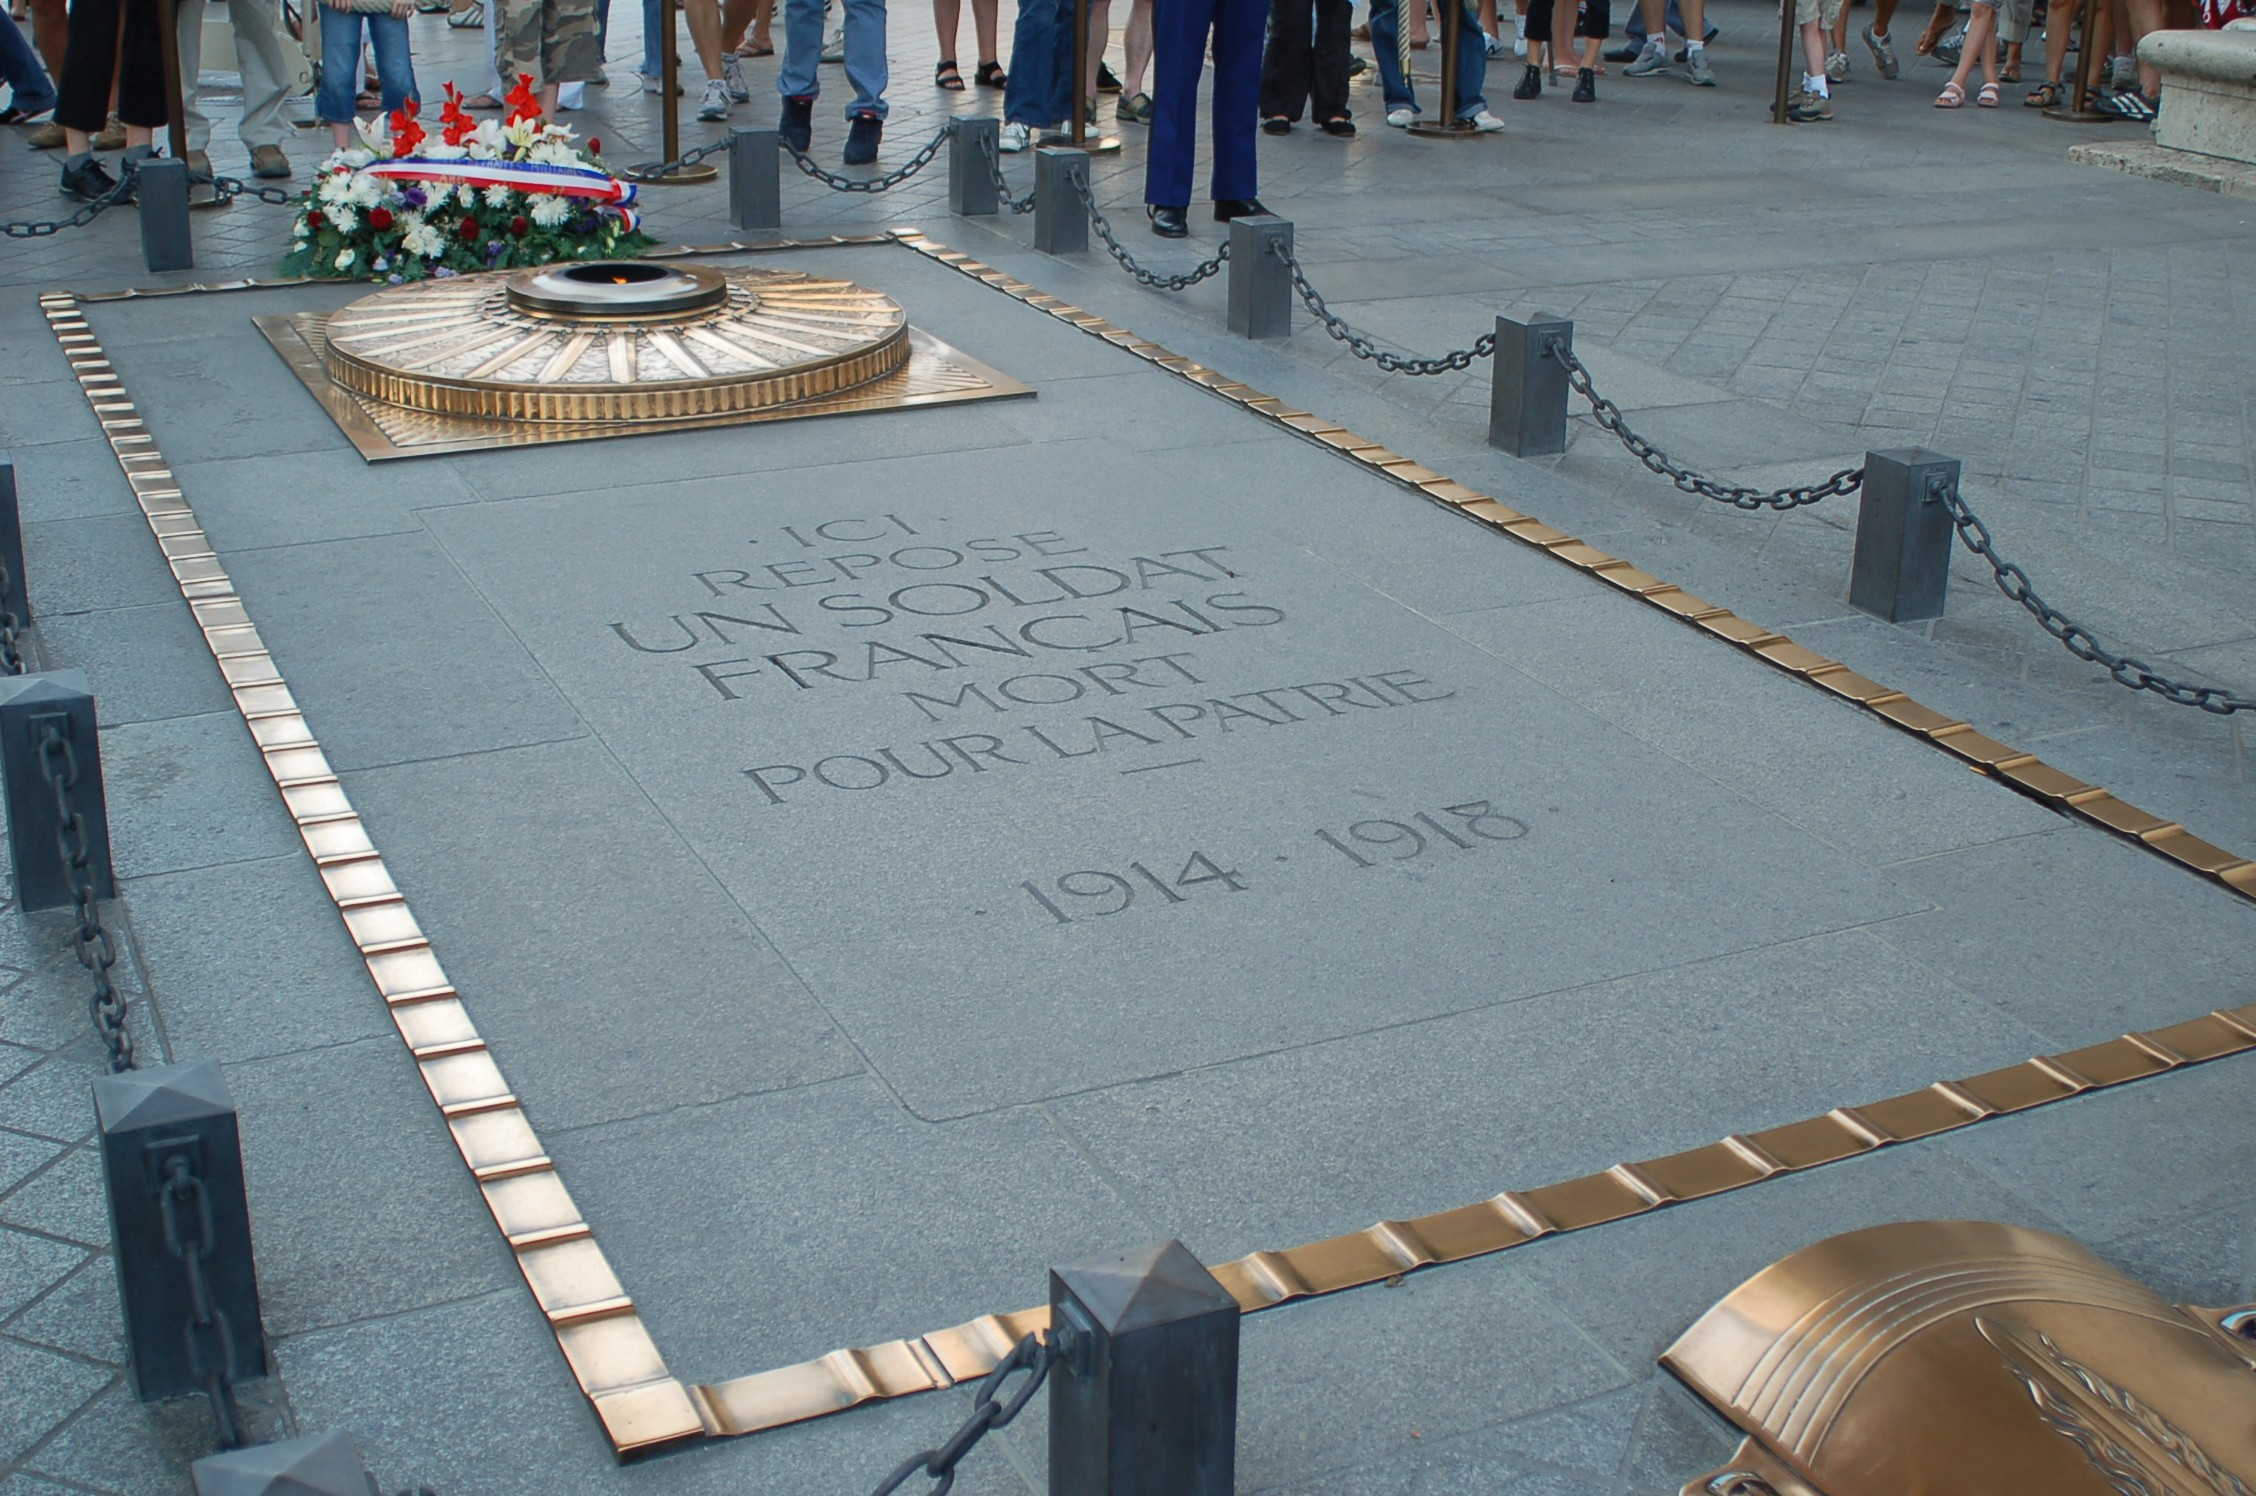 The tomb of the Unknown Soldier at Arc de Triomphe, Paris, France. Photo taken by Jérôme Blum on July 14, 2006.